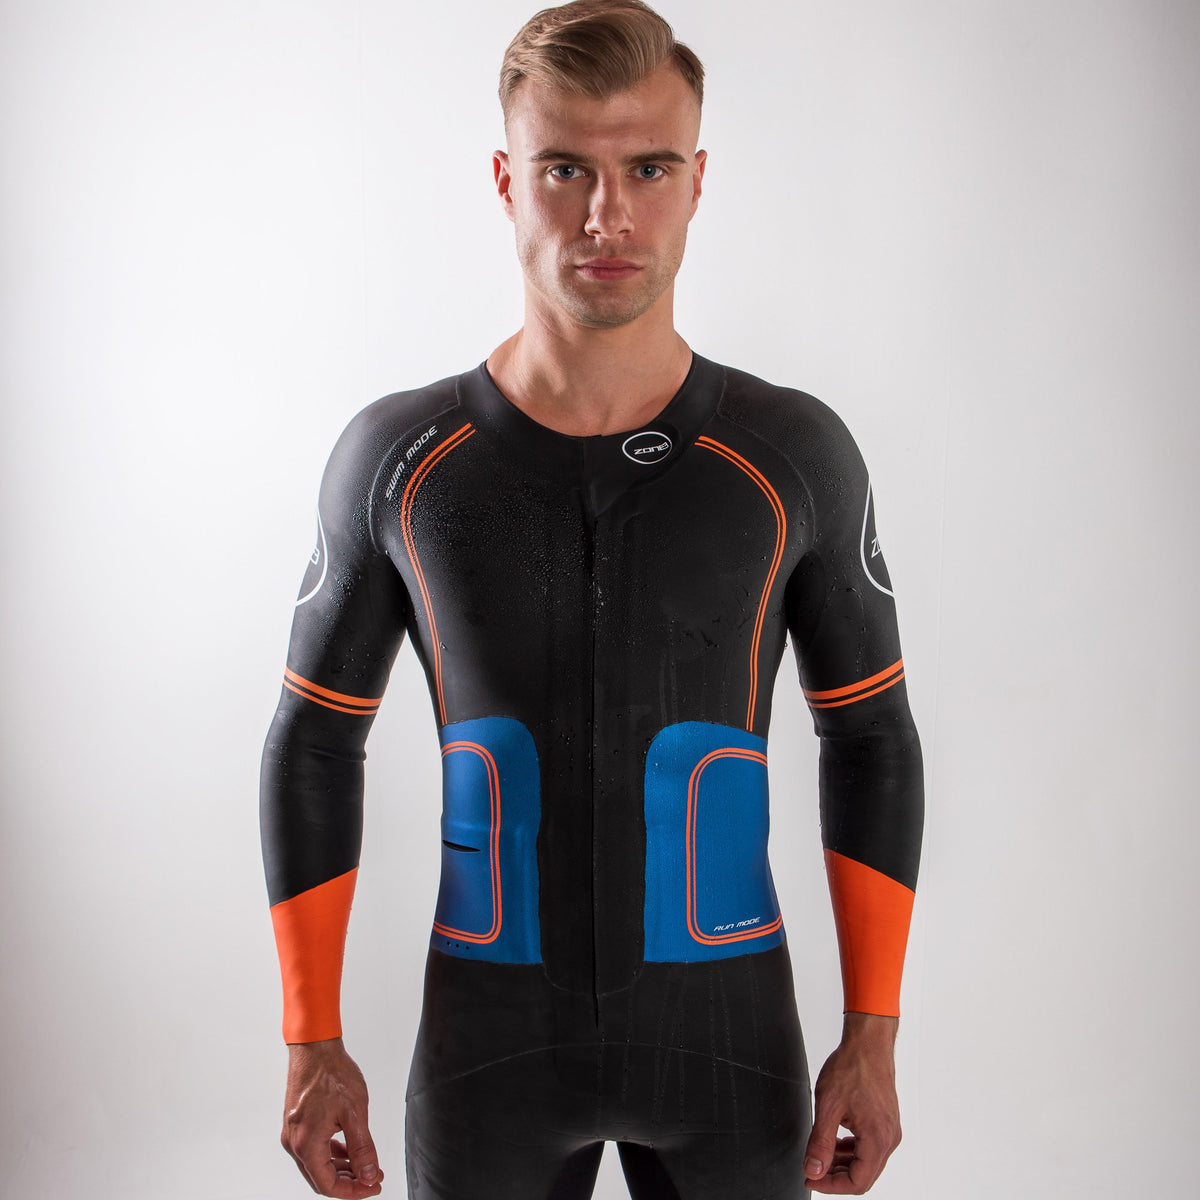 Men's Swim-Run Evolution Wetsuit with 8mm Calf Sleeves body